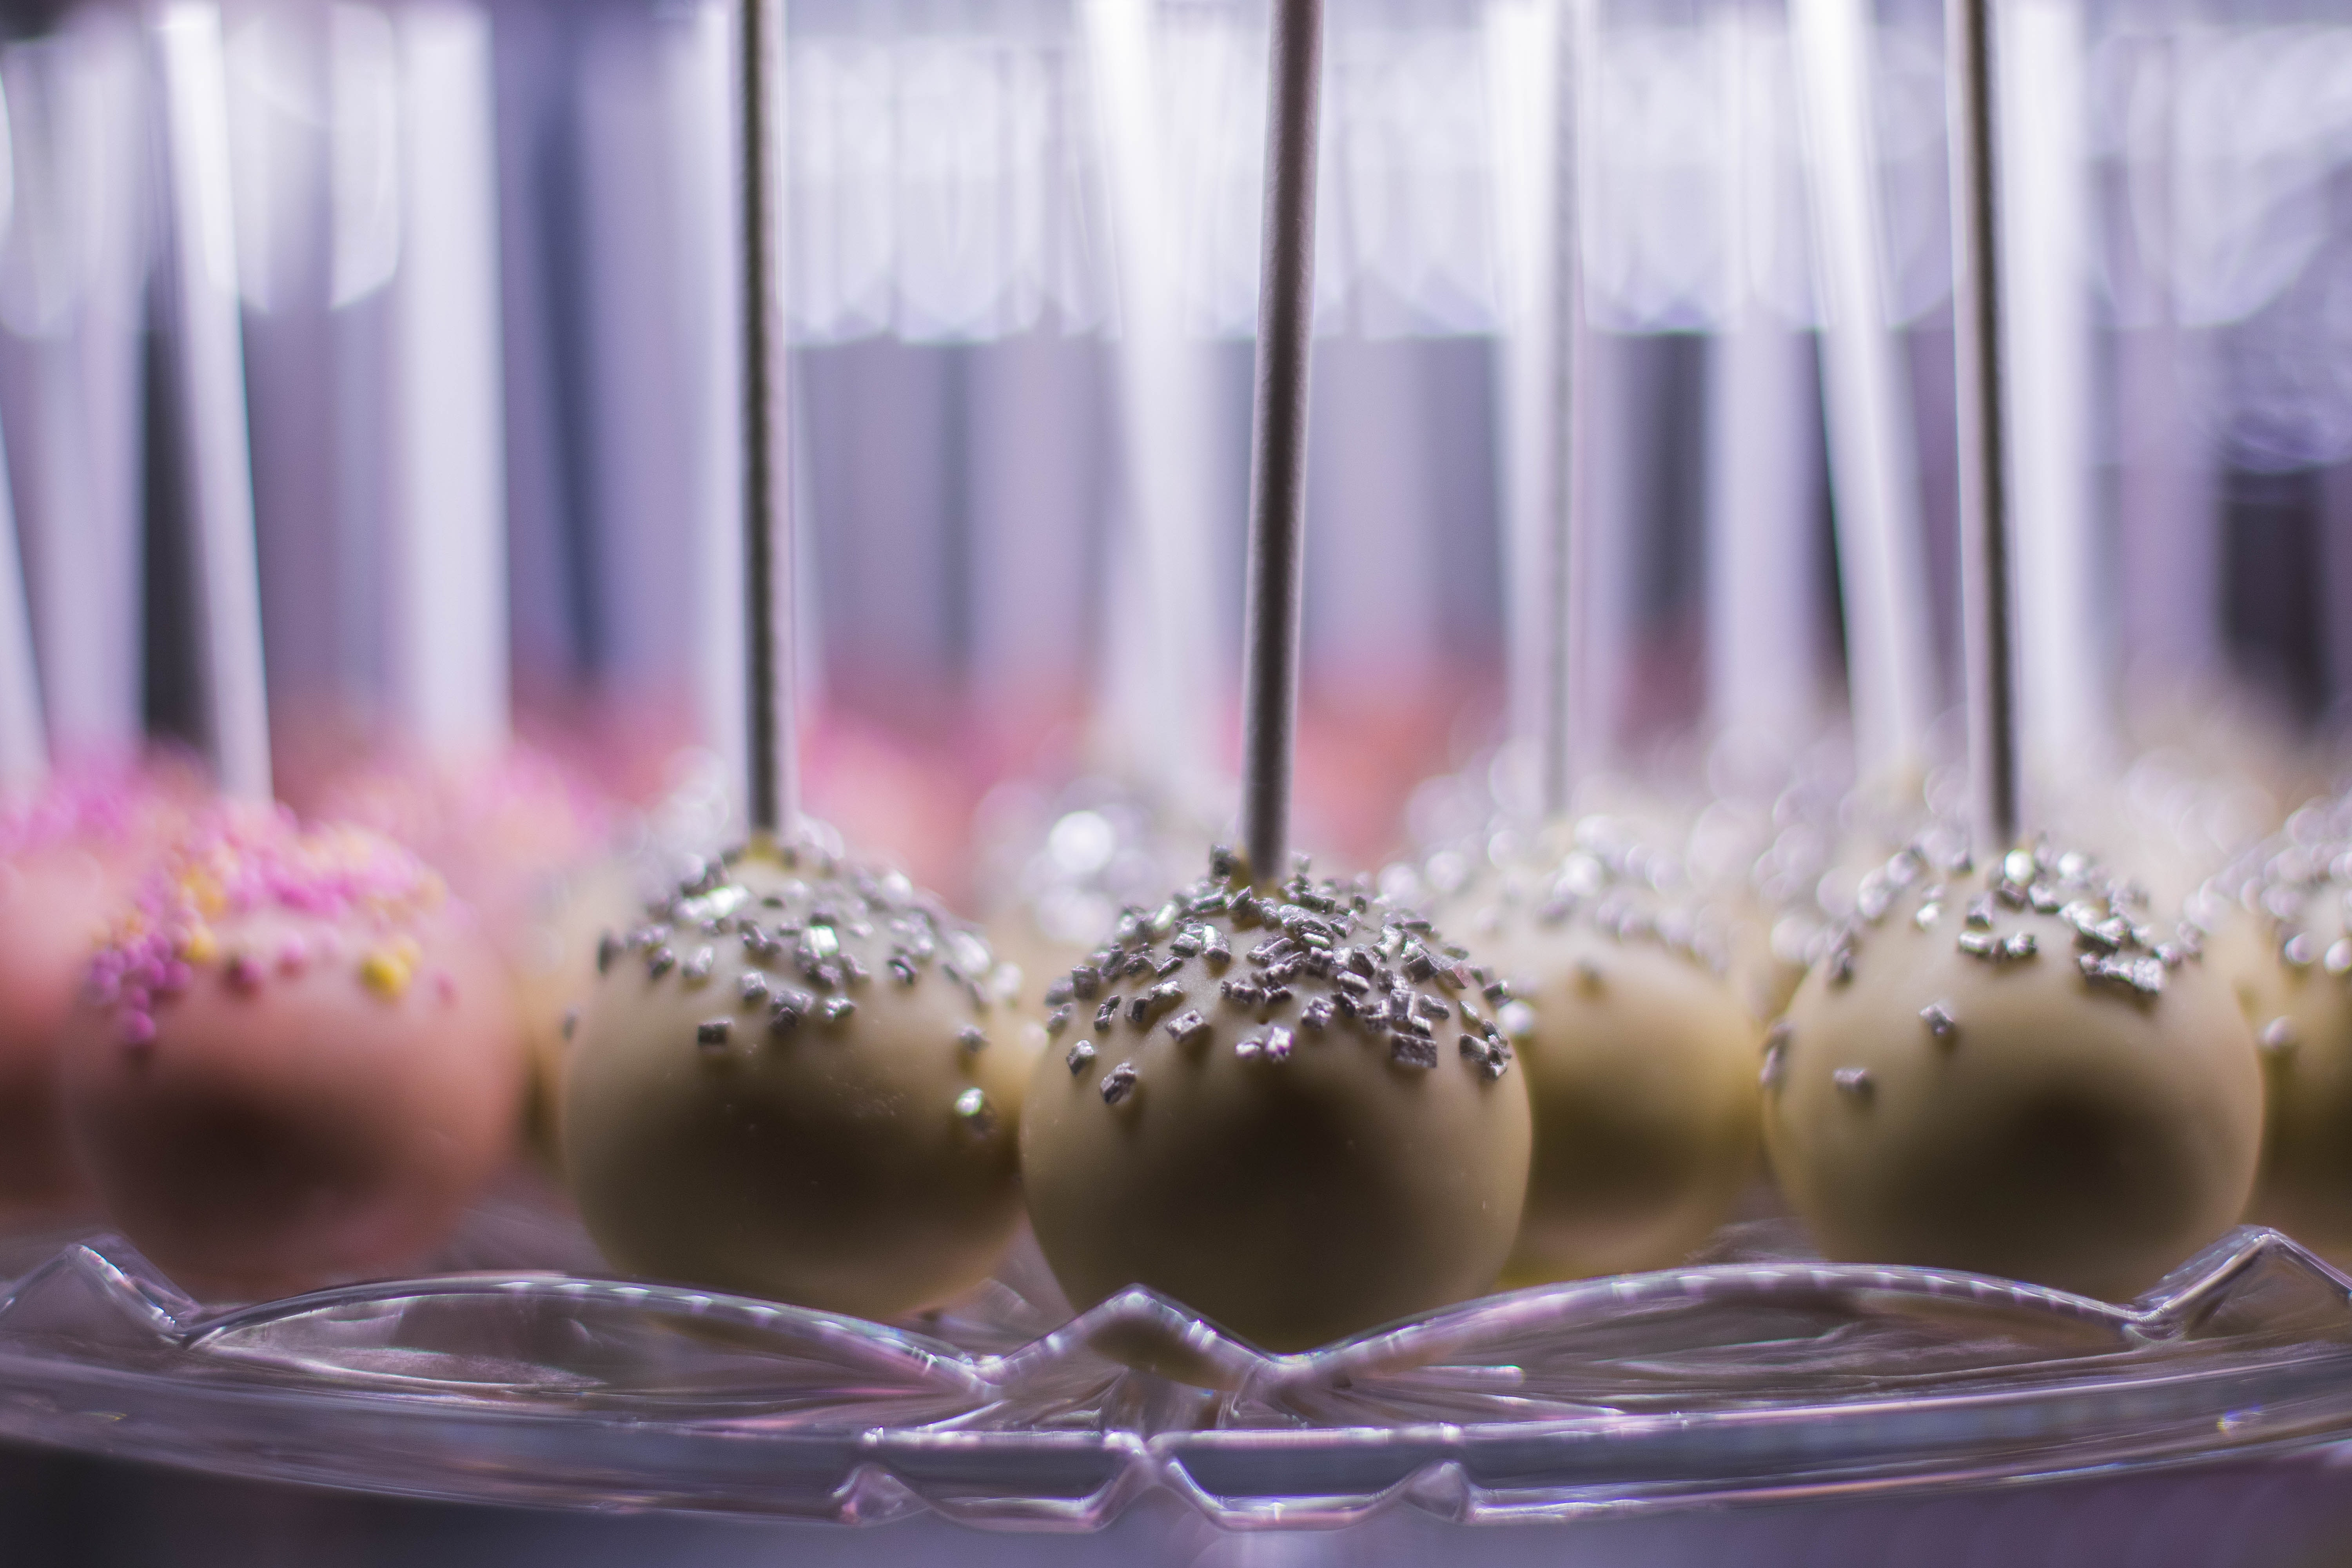 cake-cake-pops-candy-783275